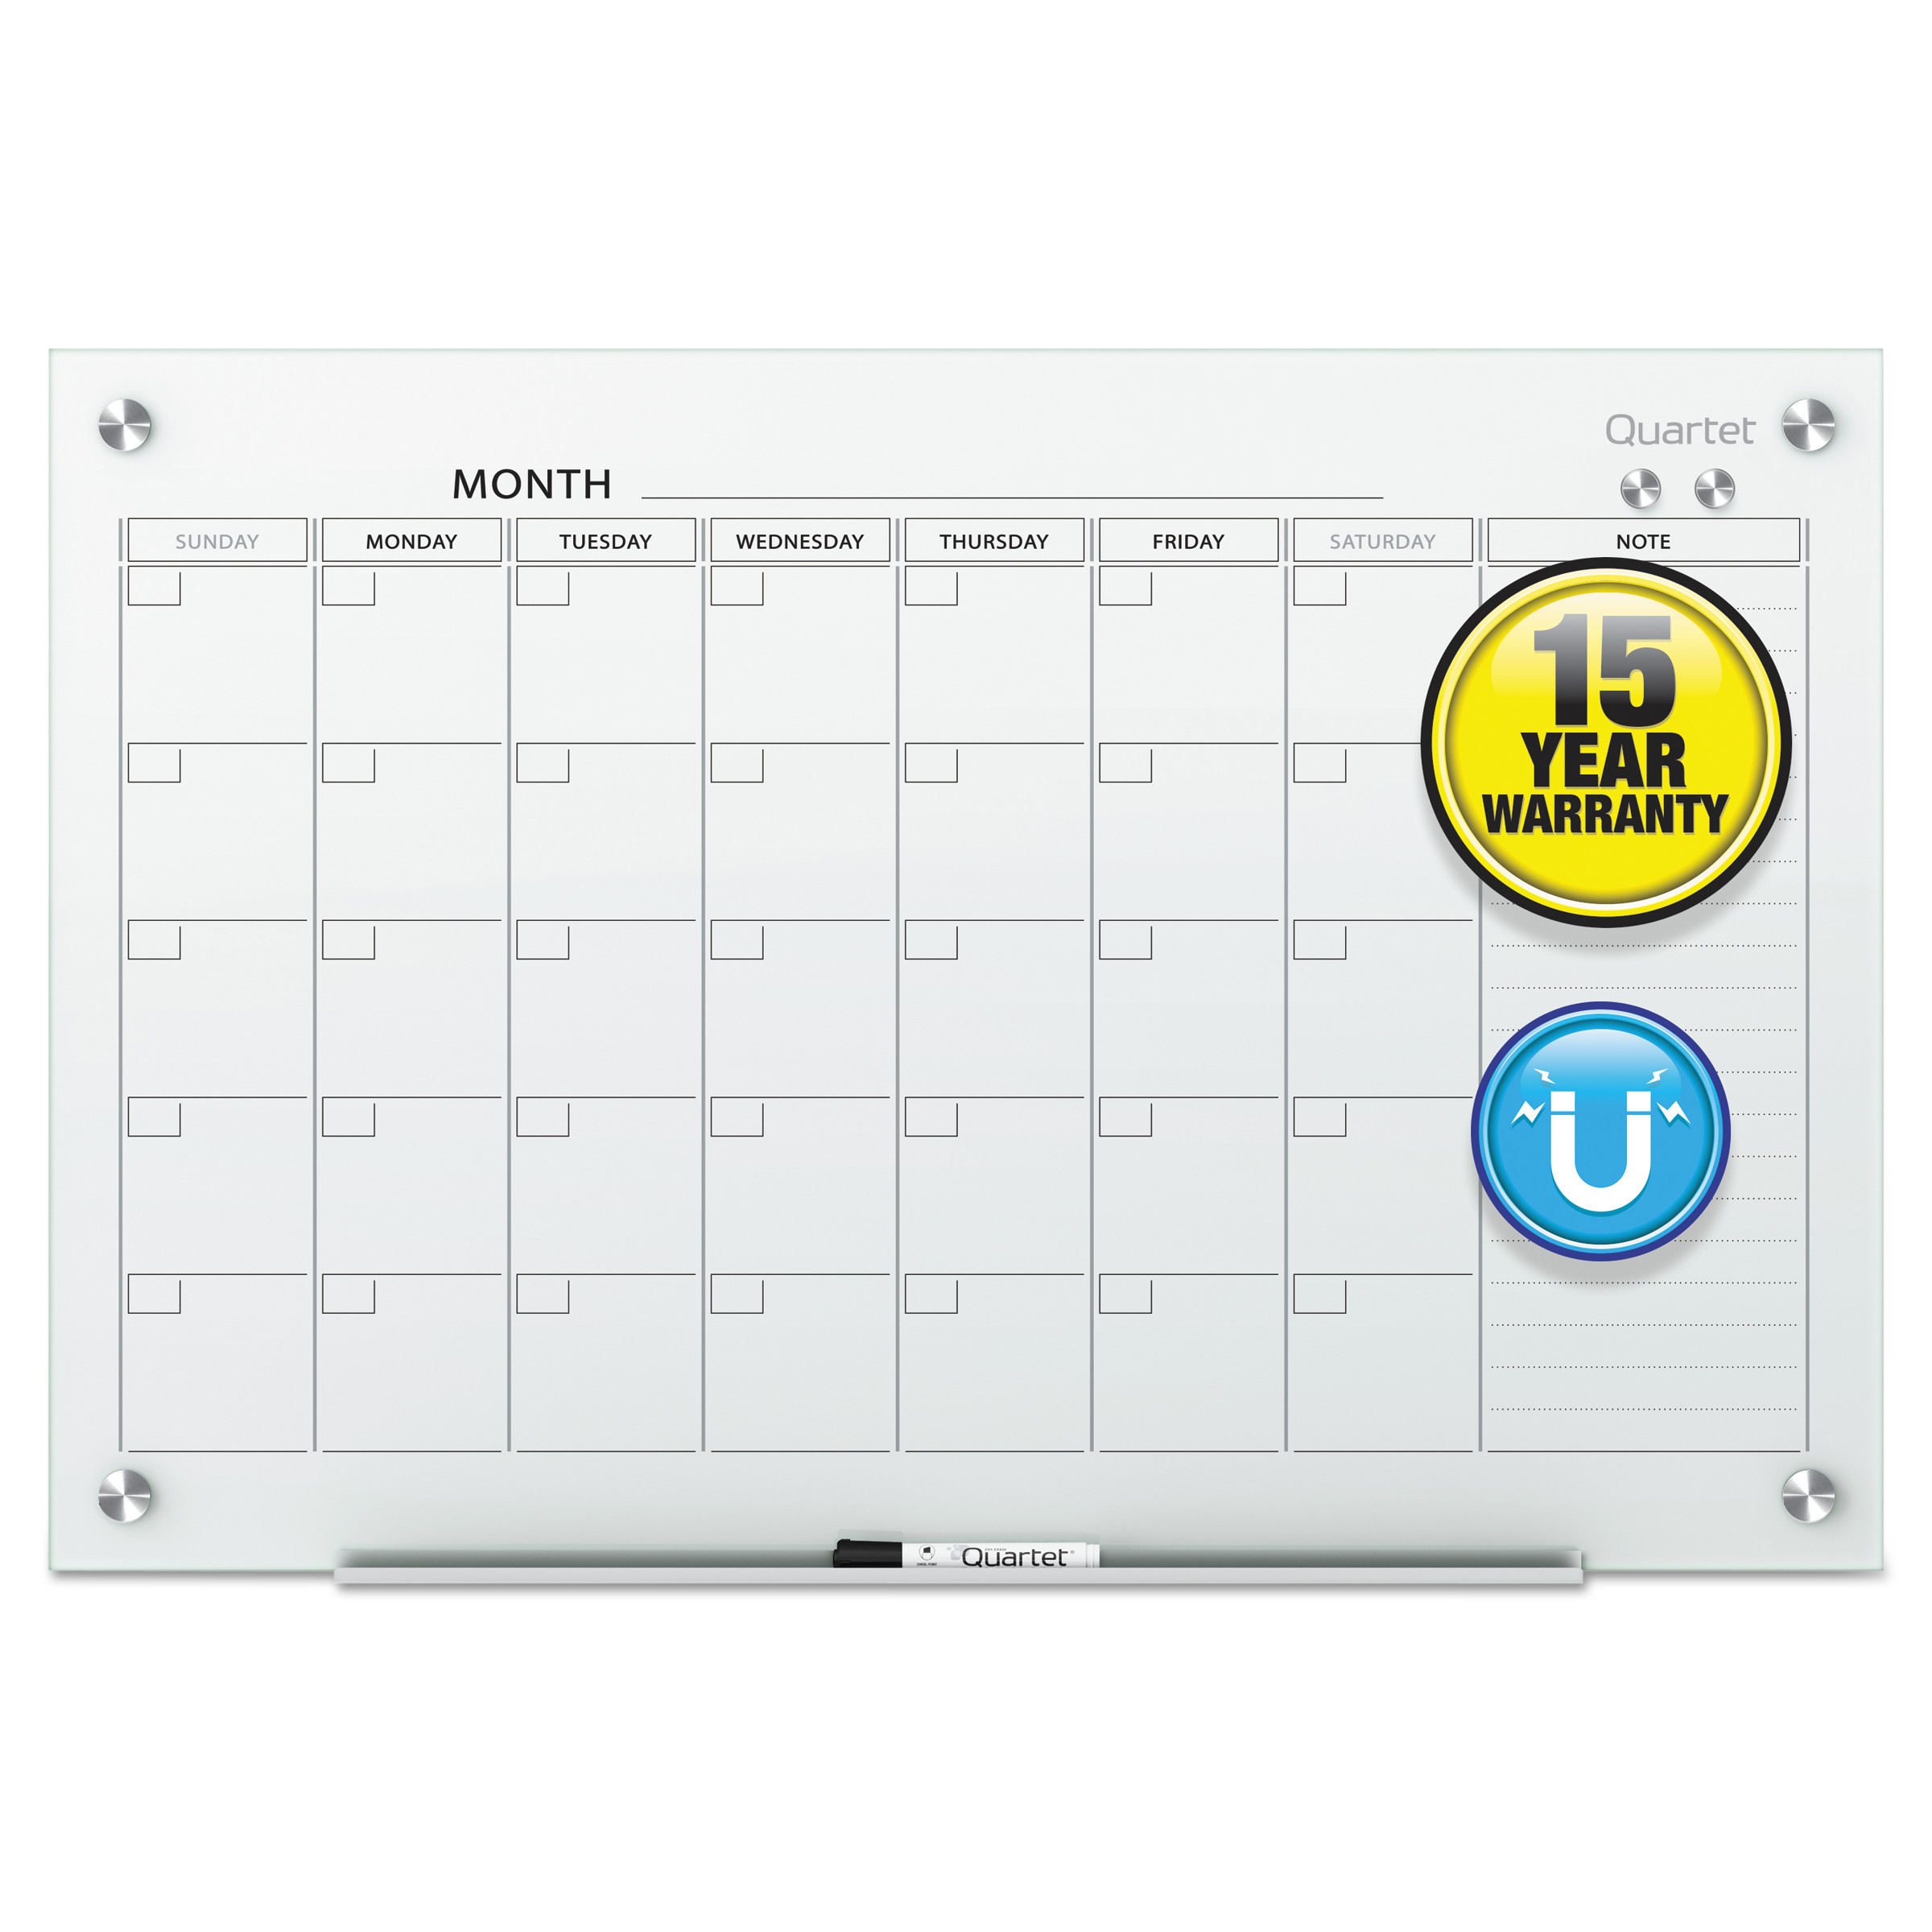 Quartet Infinity Magnetic Glass Calendar Board, 48 x 36 -QRTGC4836F